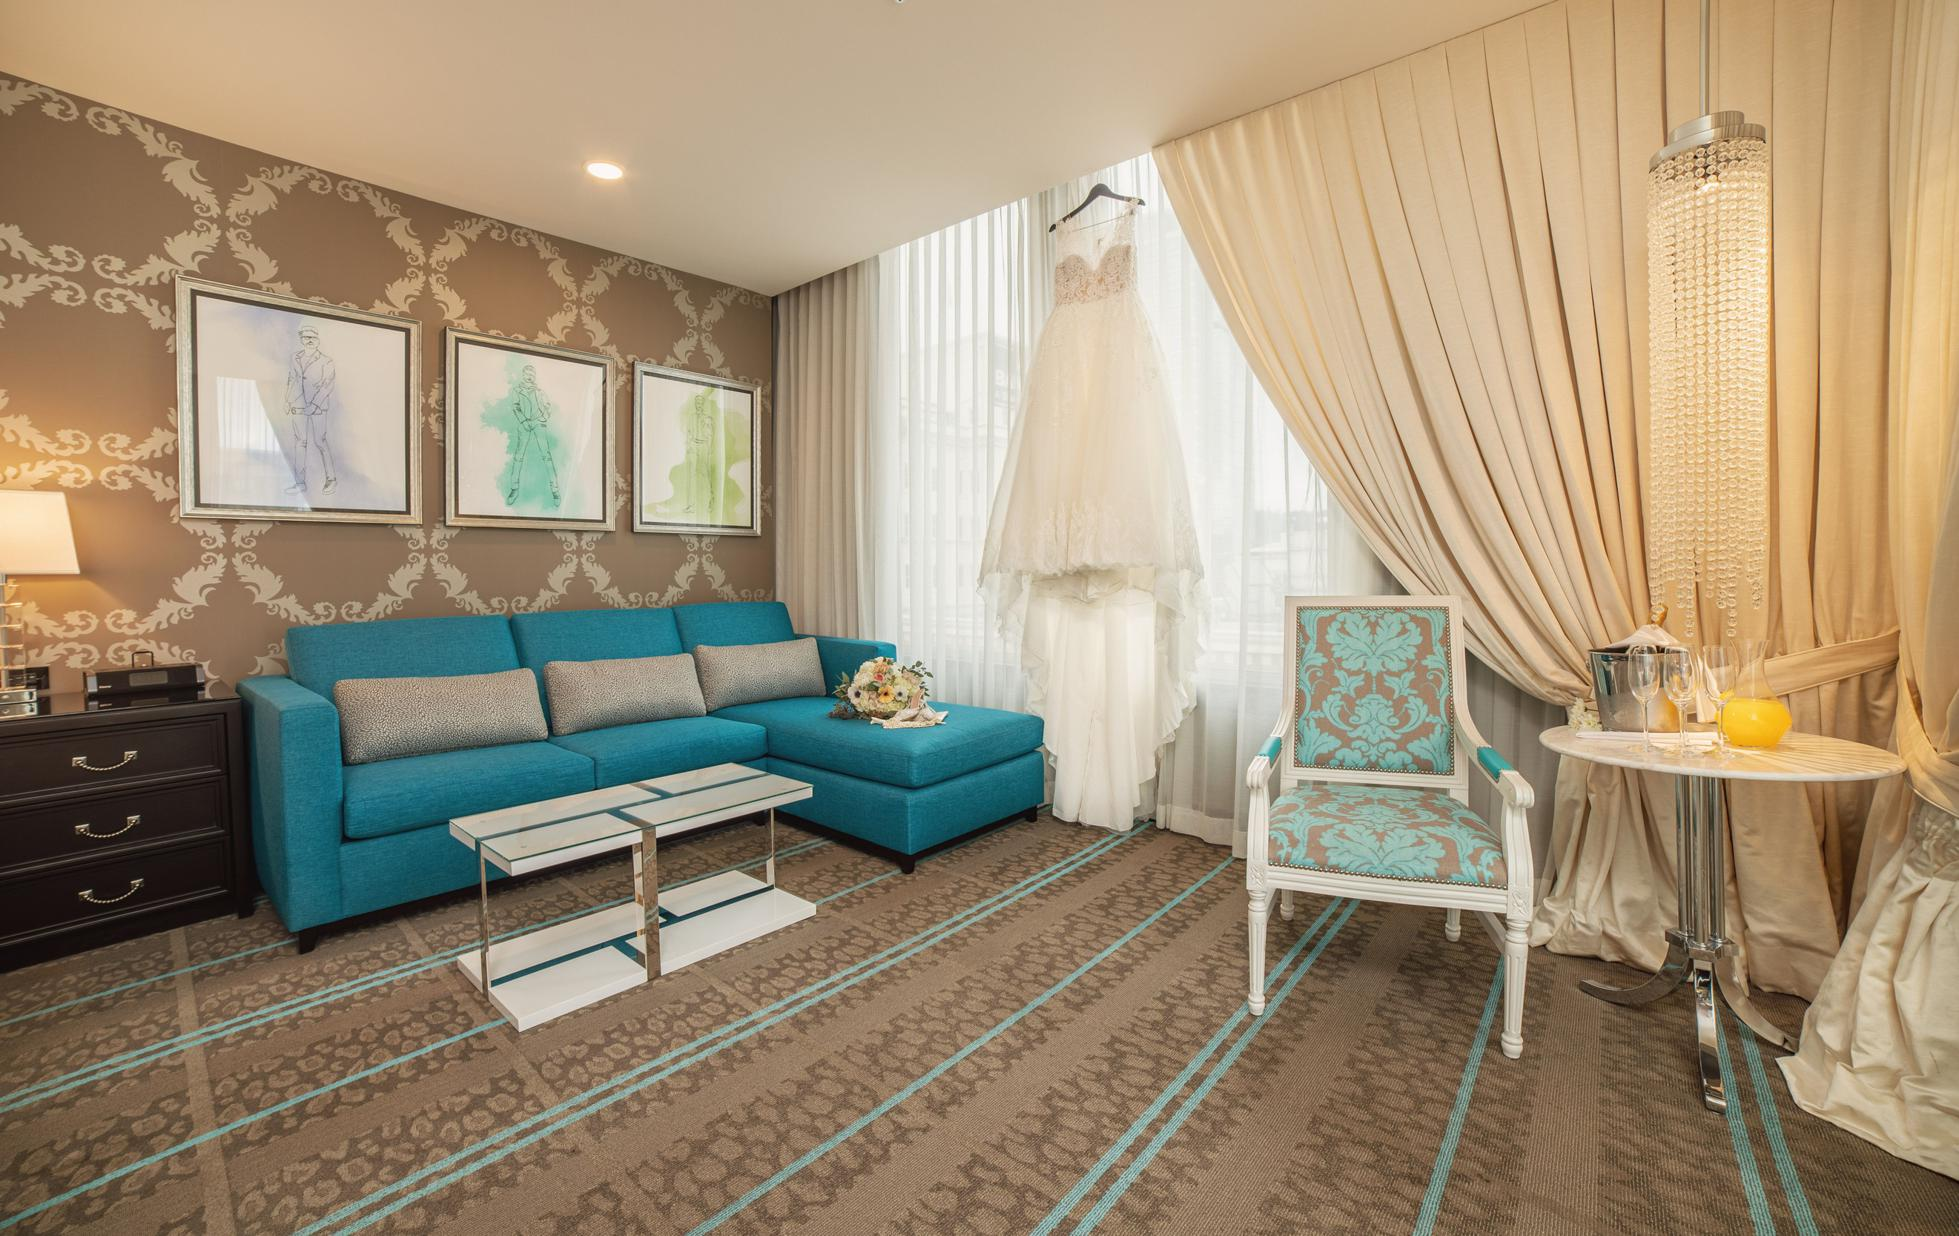 Inside the Bridal Suite Package at The Nines, which includes a 2 hour photo shoot before the couple says 'I do.'